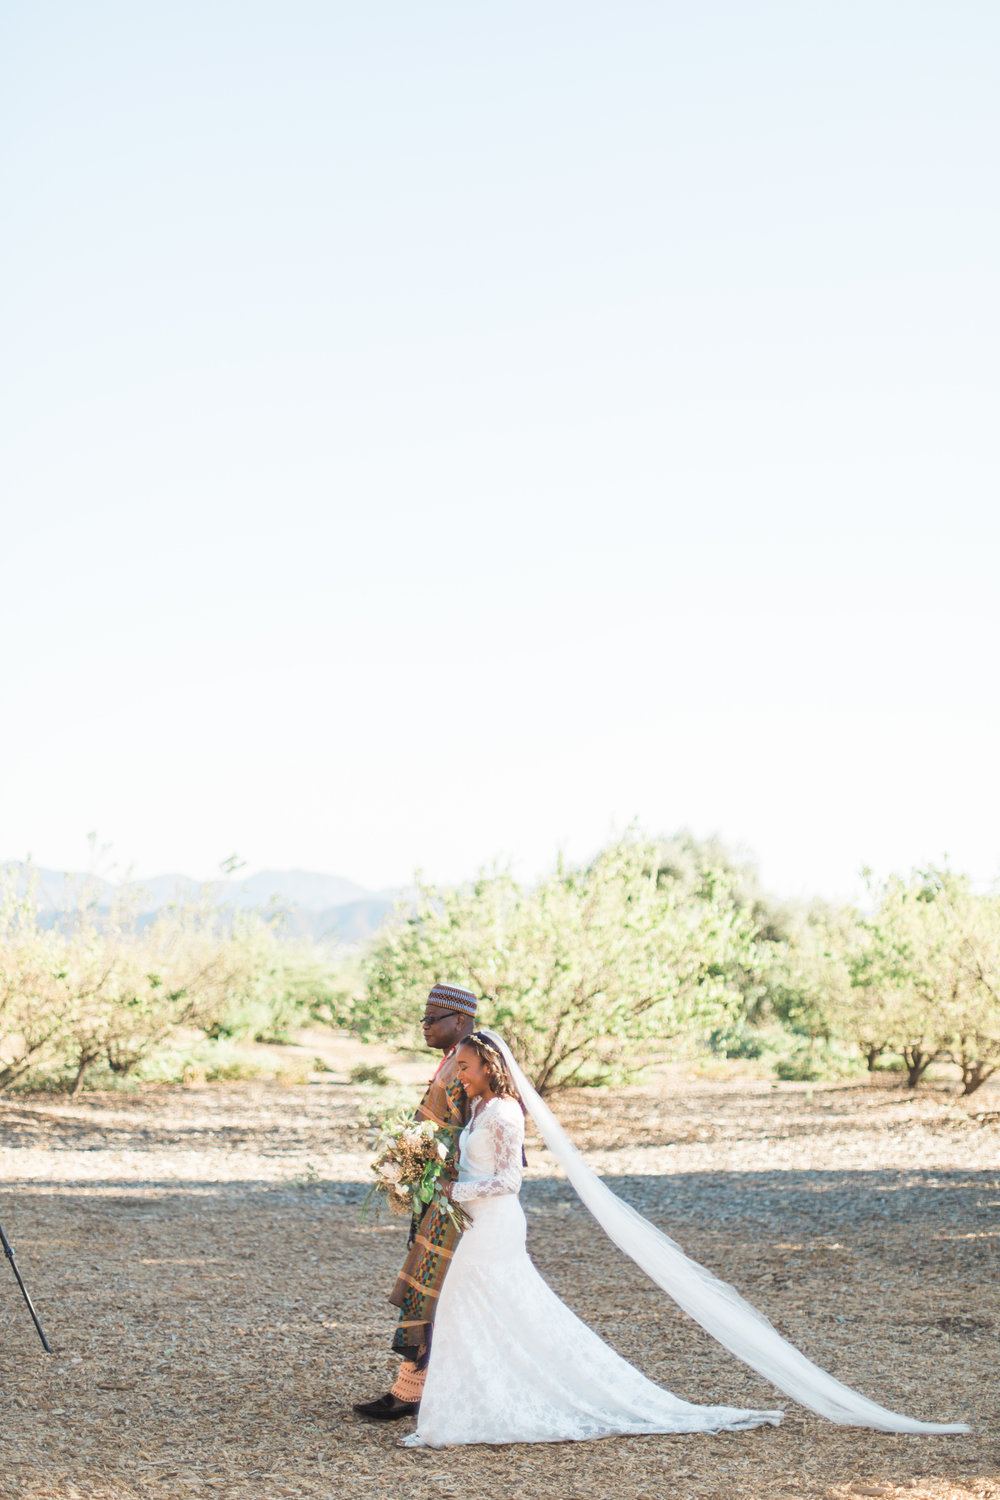 Jenny Quicksall Photography_www.jennyquicksall.com_California Wedding Photographer_Highland Springs Ranch and Inn Resort_Cherry Valley California (38).JPG